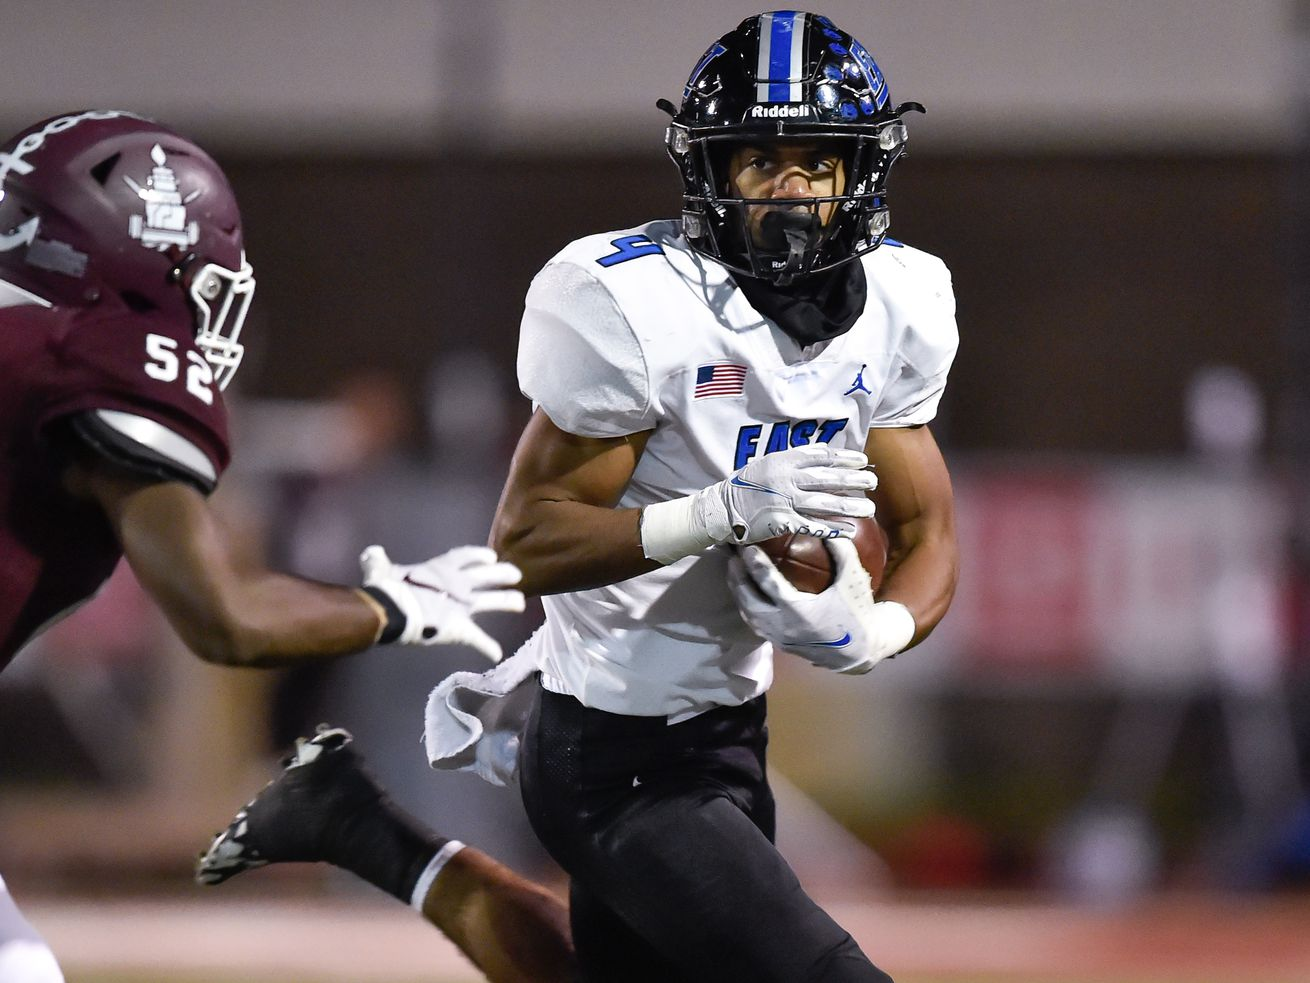 The streak lives: Lincoln-Way East squeaks past Lockport